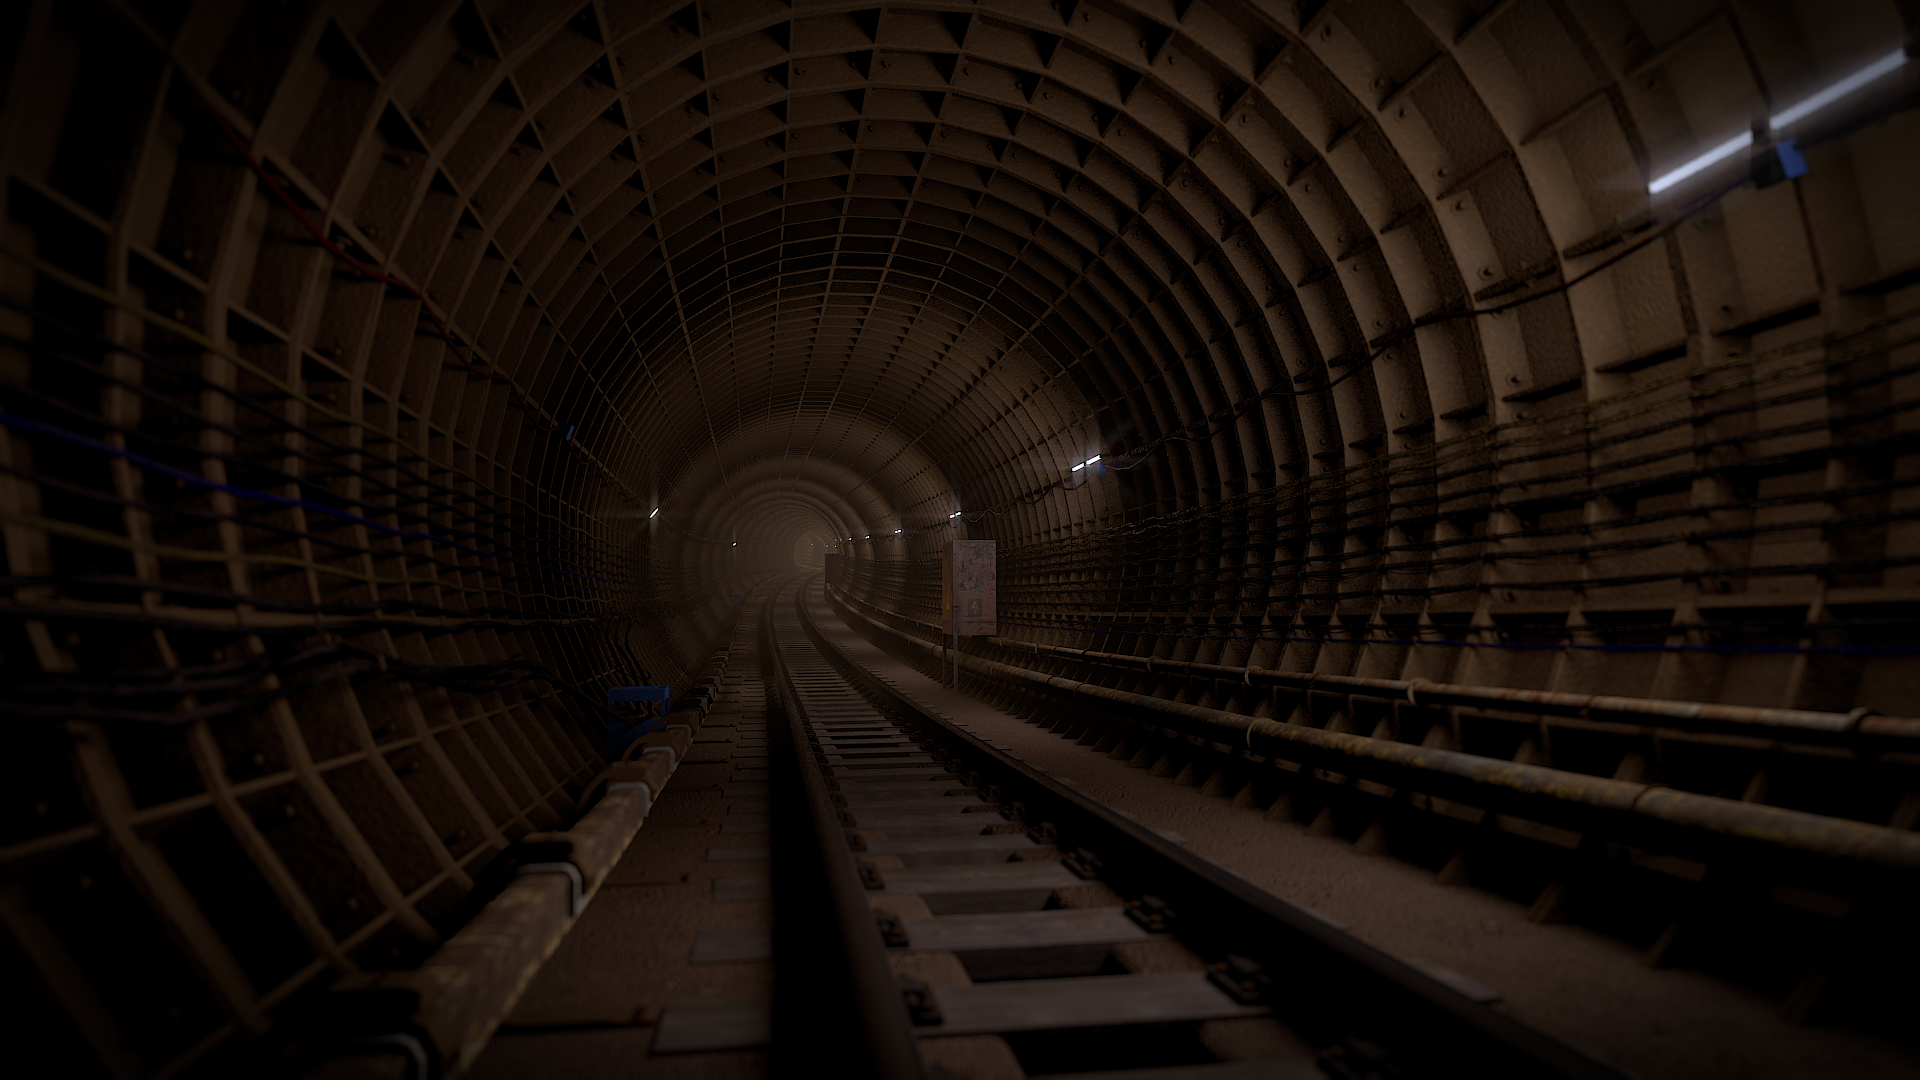 Moscow subway tunnel